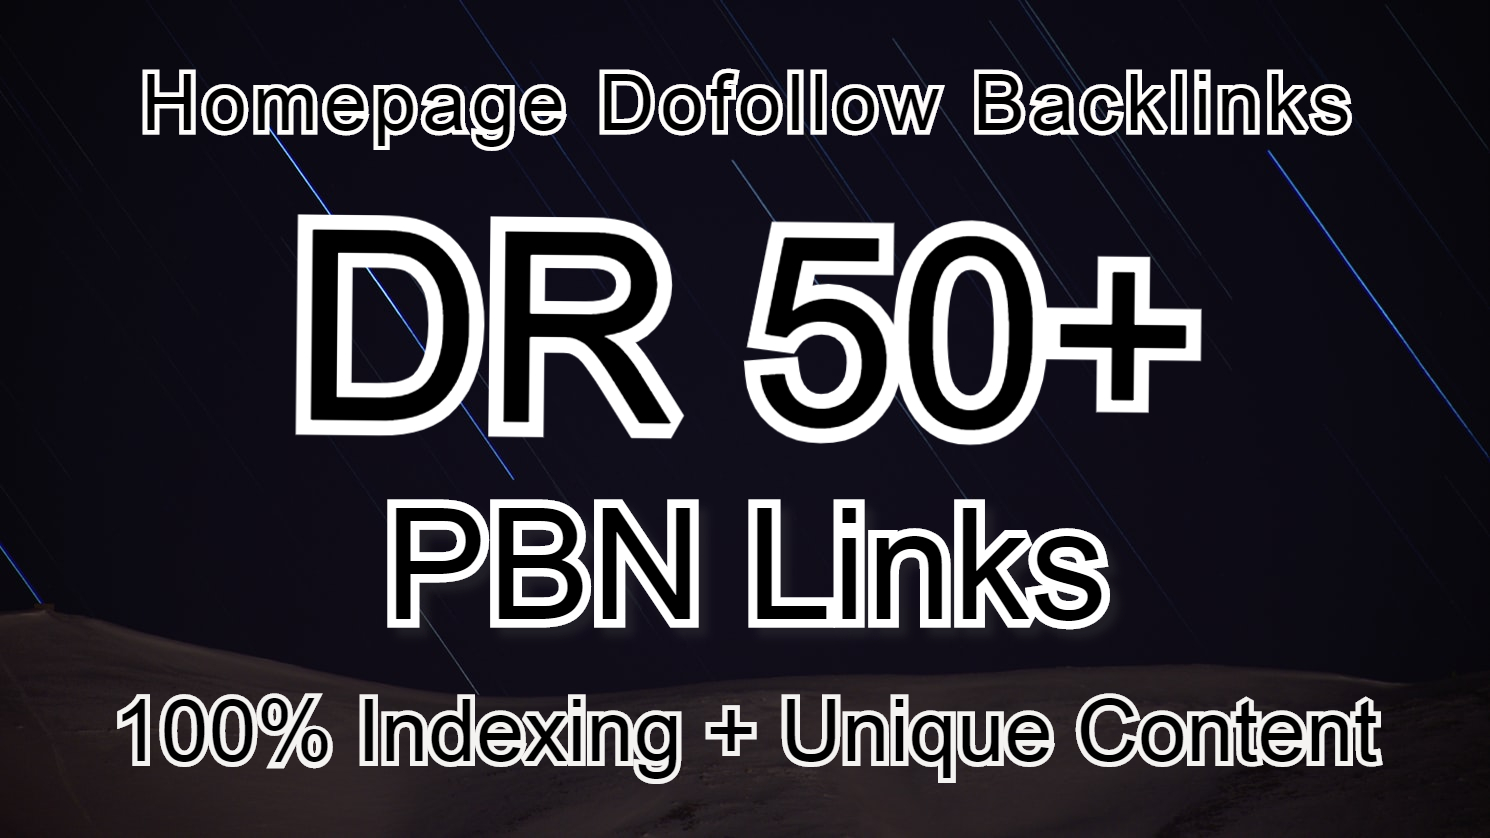 I Will provied 50 Homepage Unique Domains DR50+PBN Backlinks Dofollow